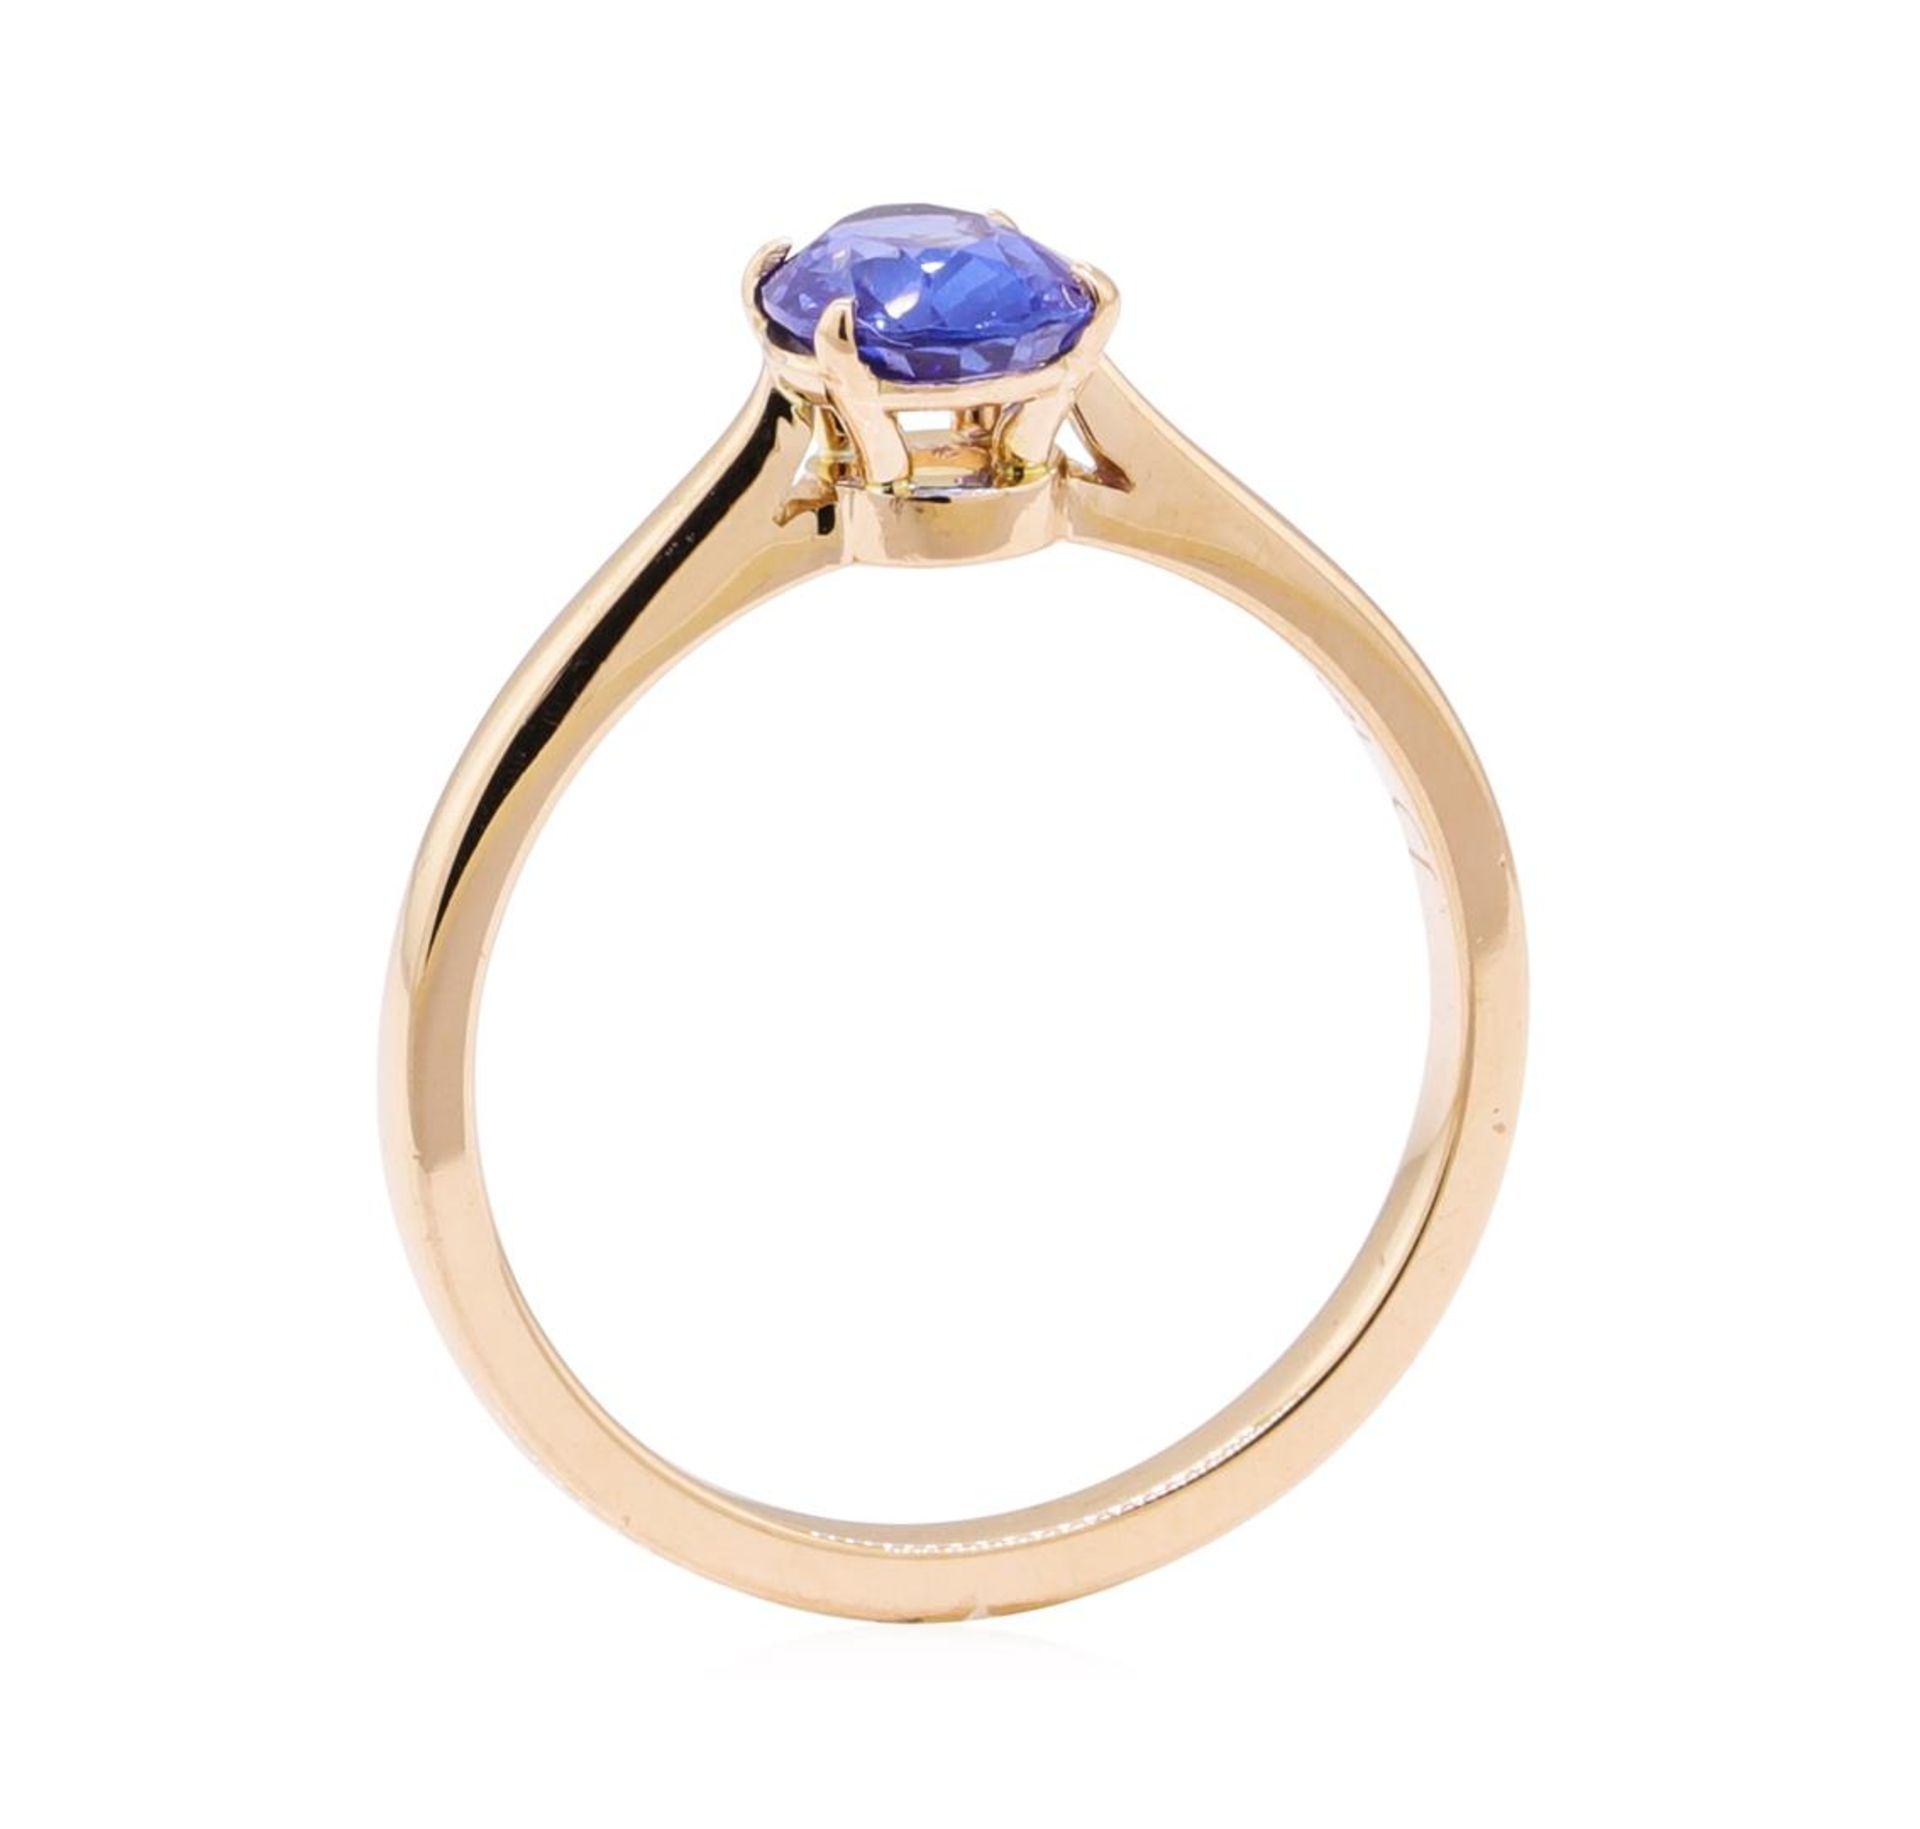 0.98ct Blue Sapphire Ring - 18KT Rose Gold - Image 4 of 4